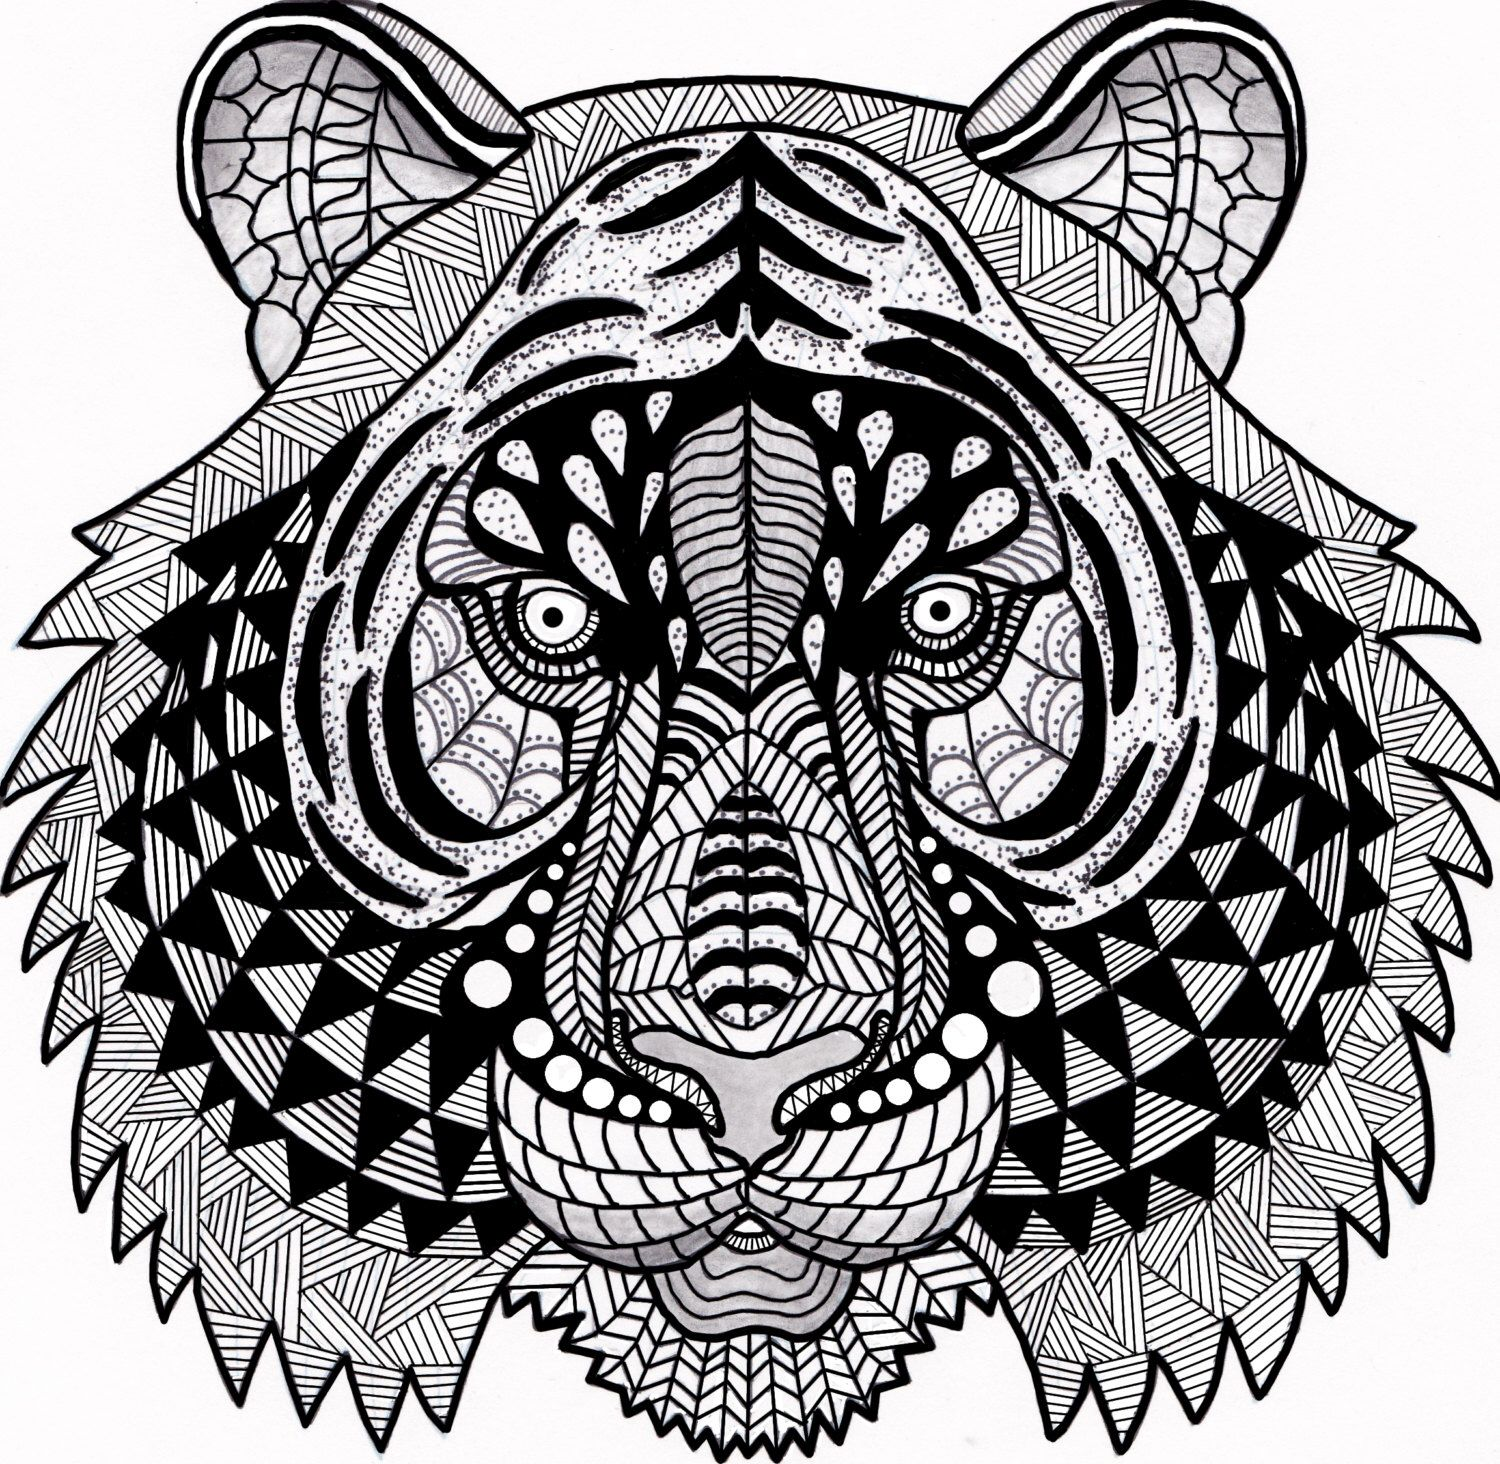 Tiger Zentangle Coloring Page By Inspirationbyvicki On